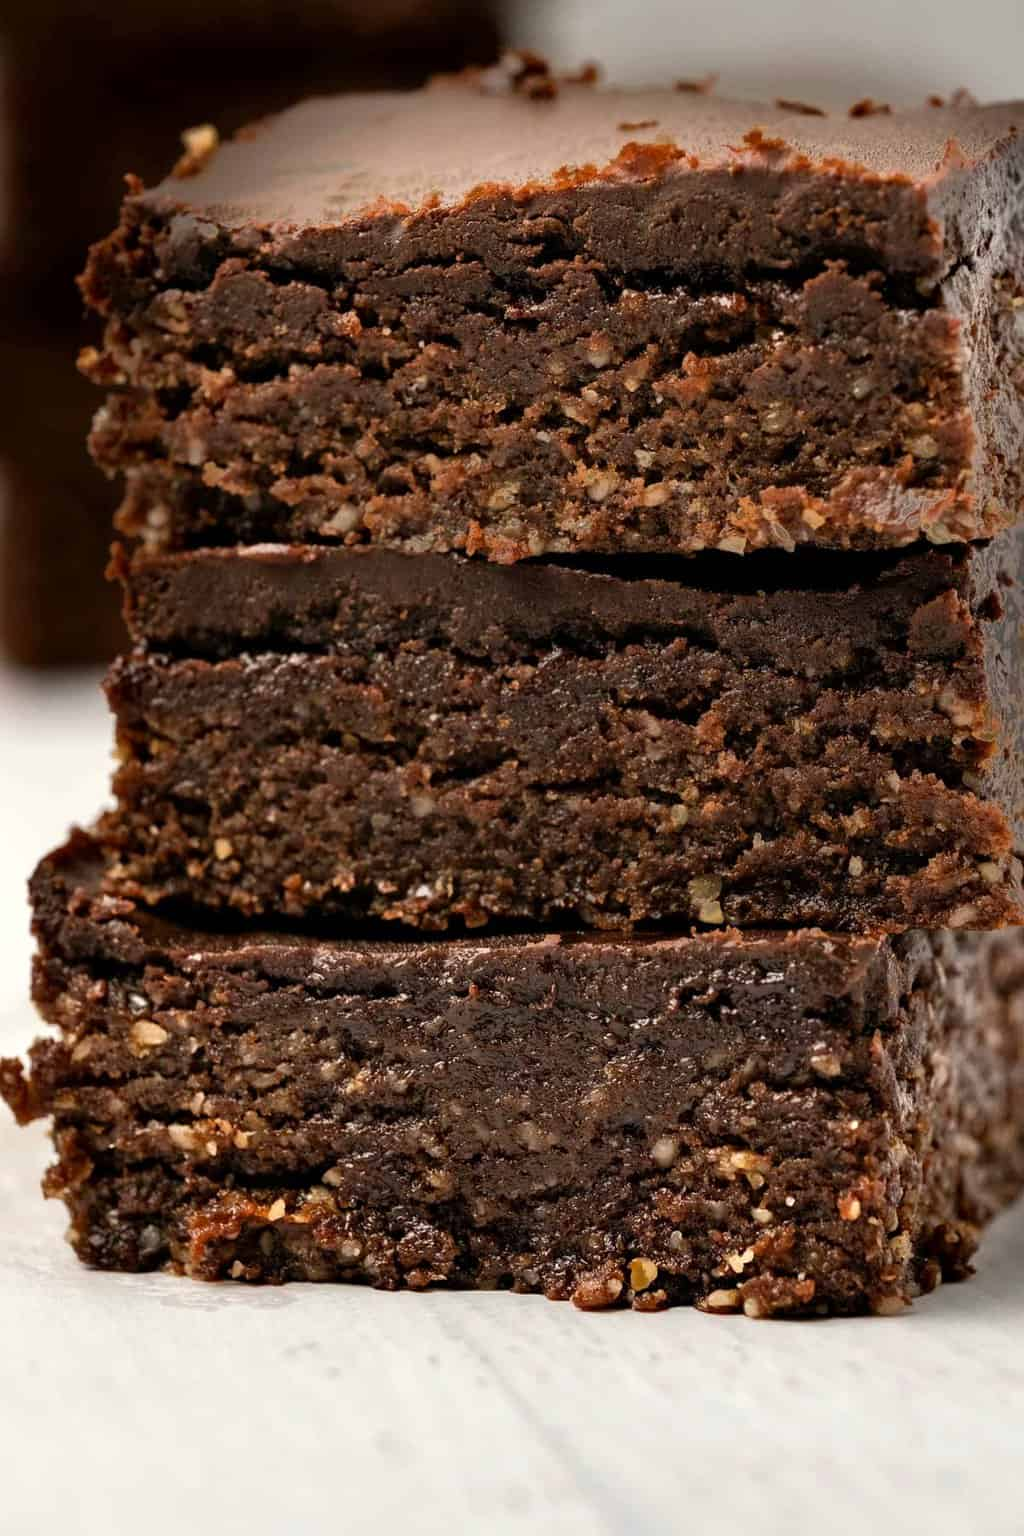 Stack of raw vegan brownies.